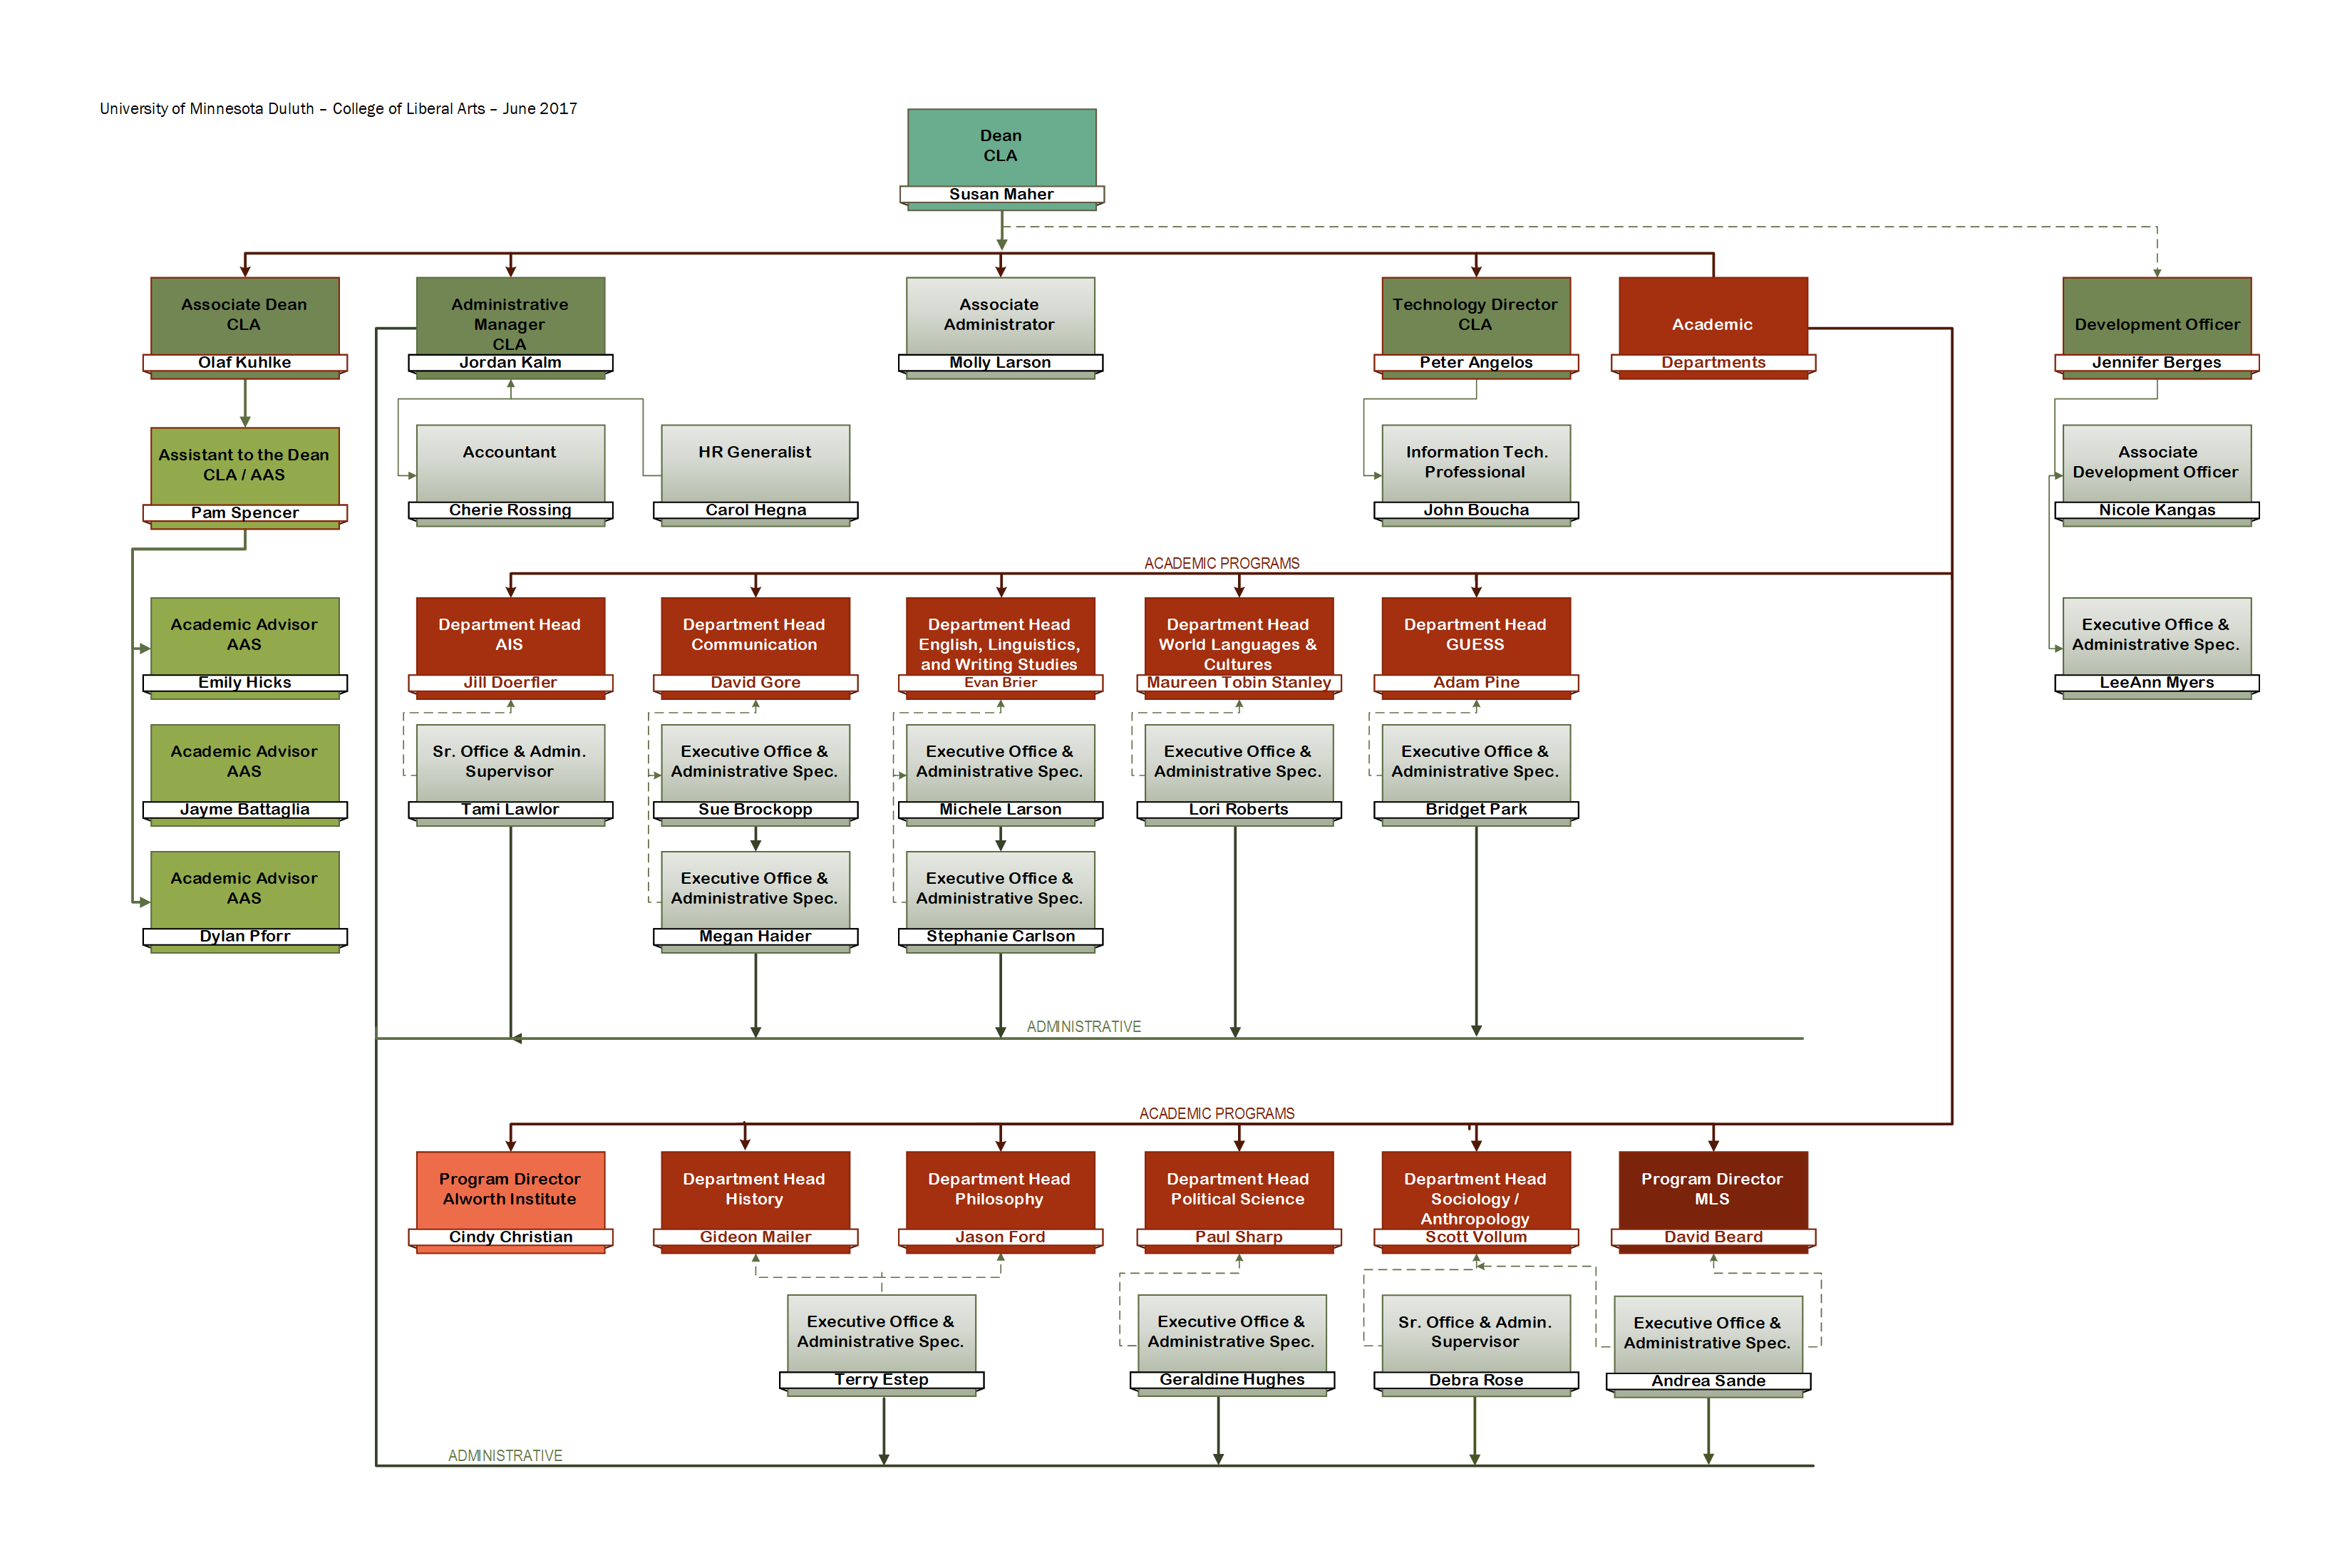 UMD College of Liberal Arts Organizational Chart as of June 2017